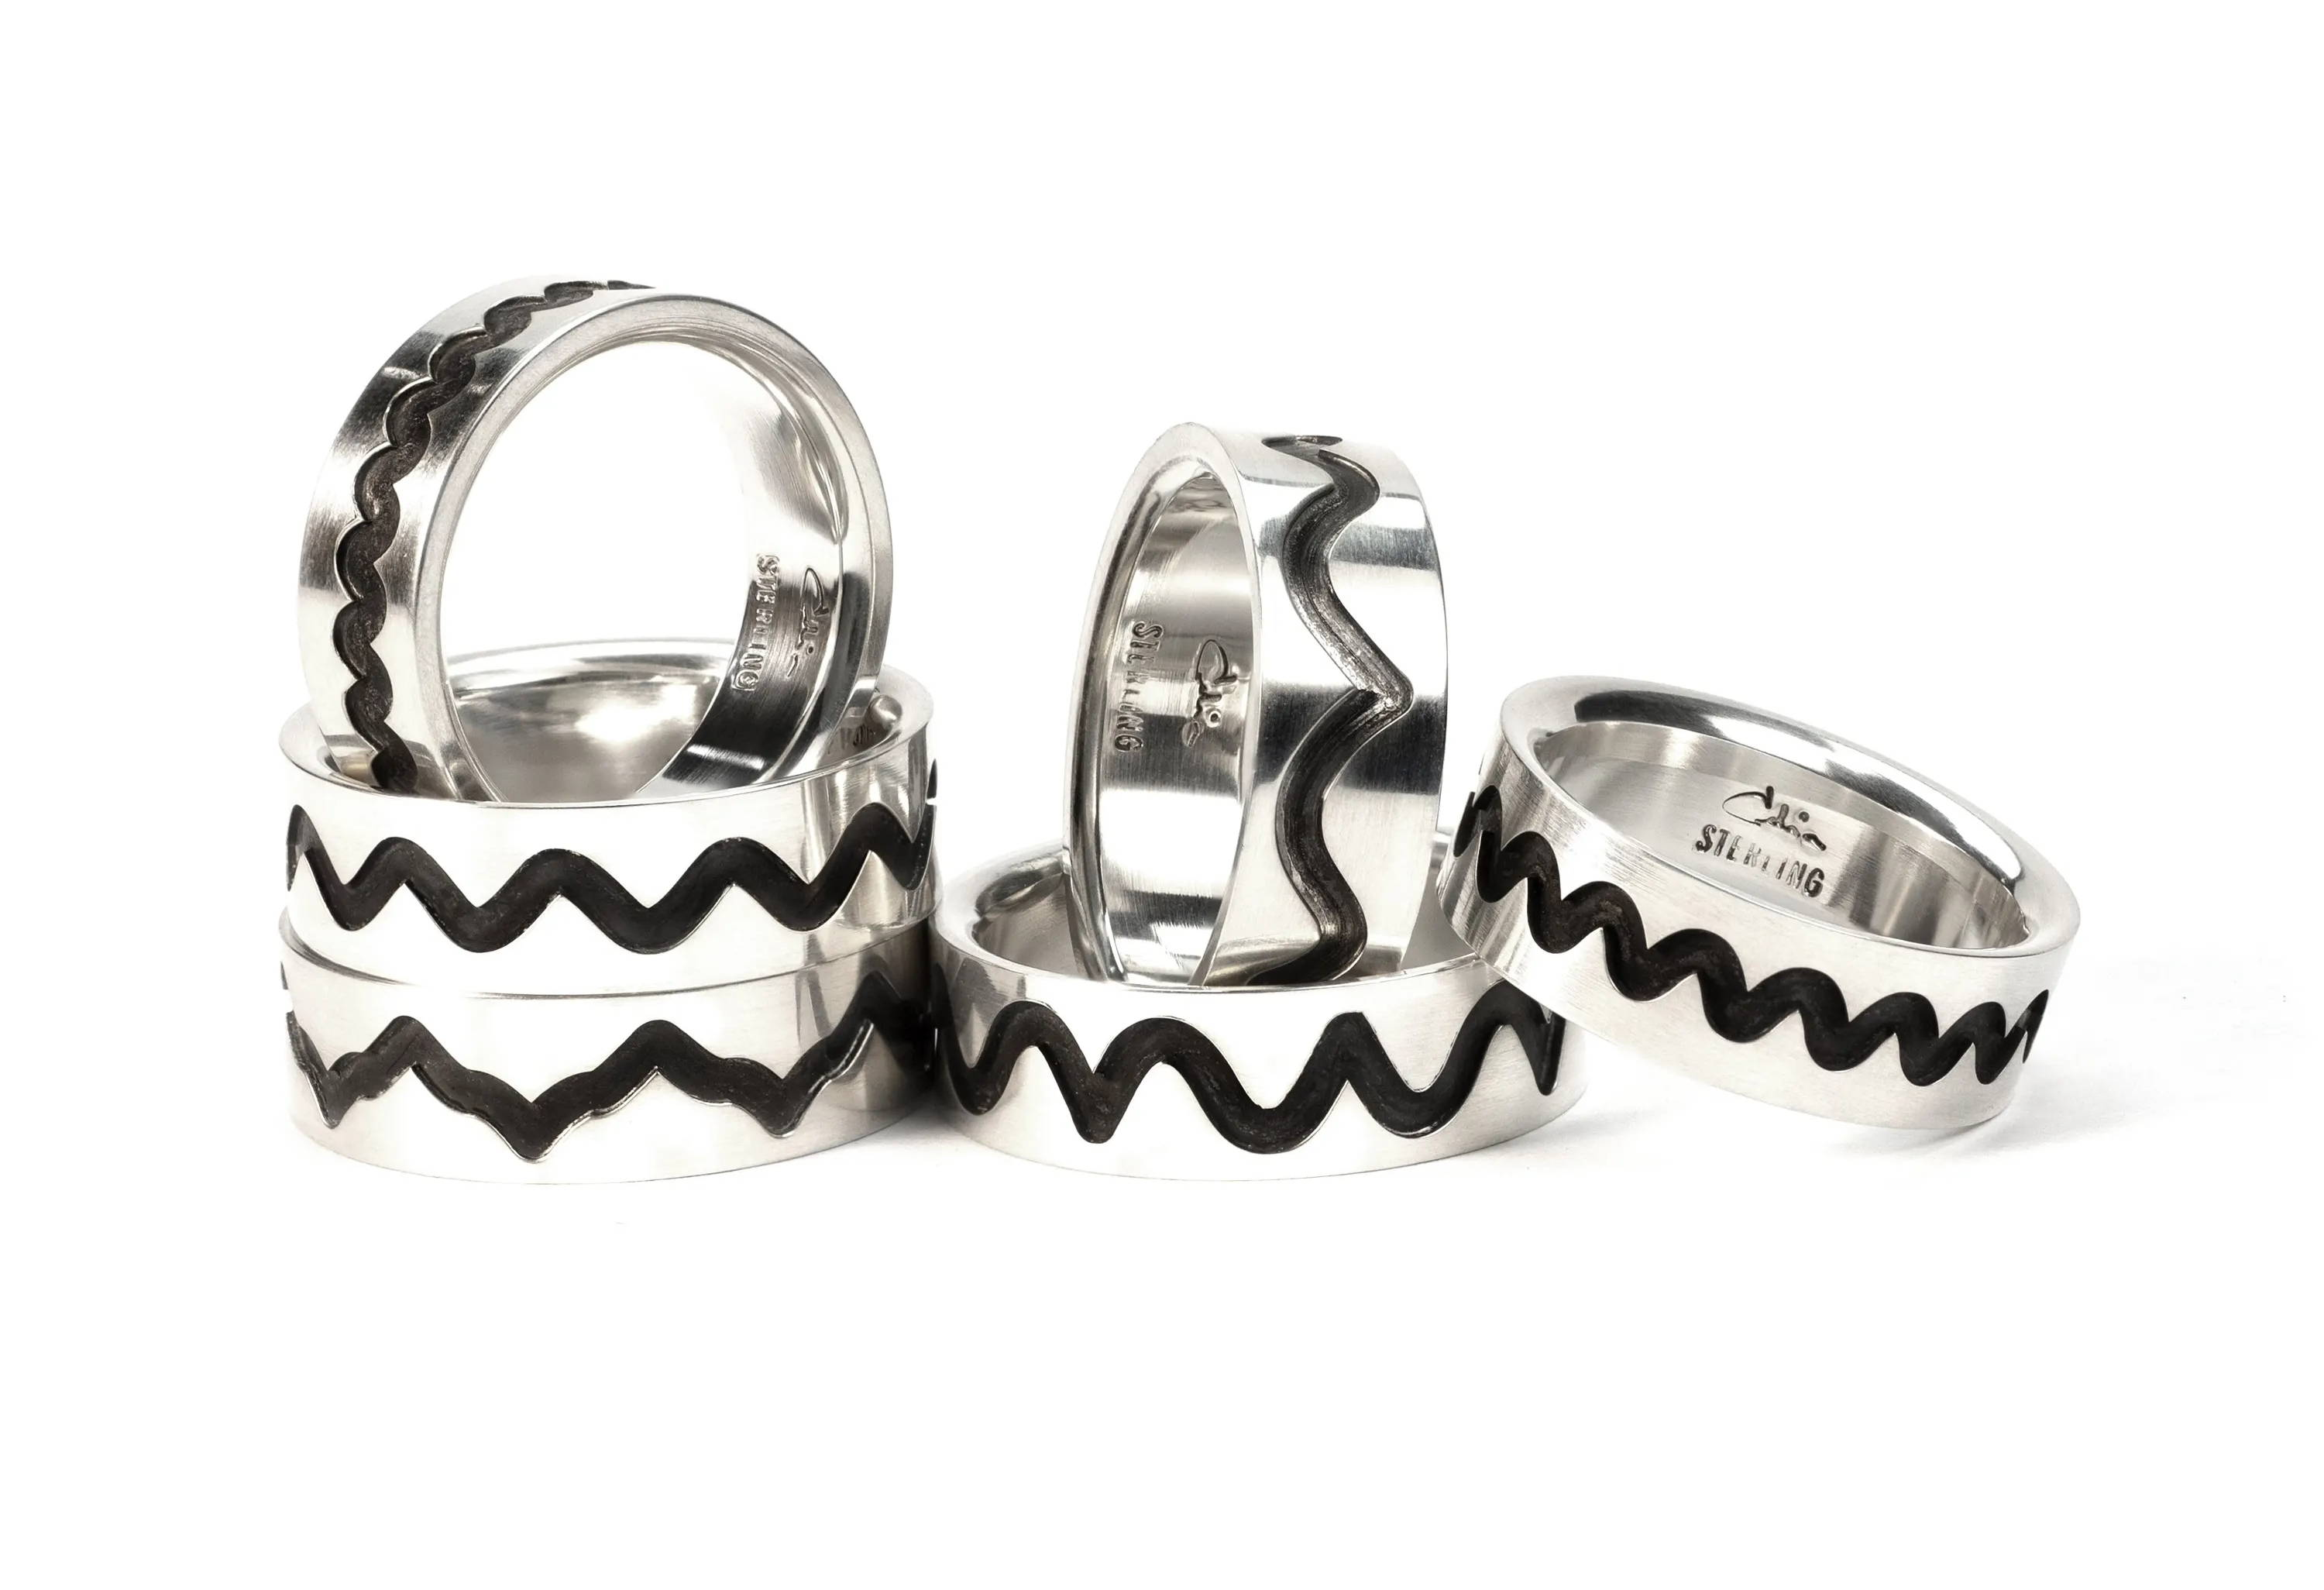 A Collection of Ring Bands Ornamental Turned with undulating Wave Patterns from the Rose Engine Lathe